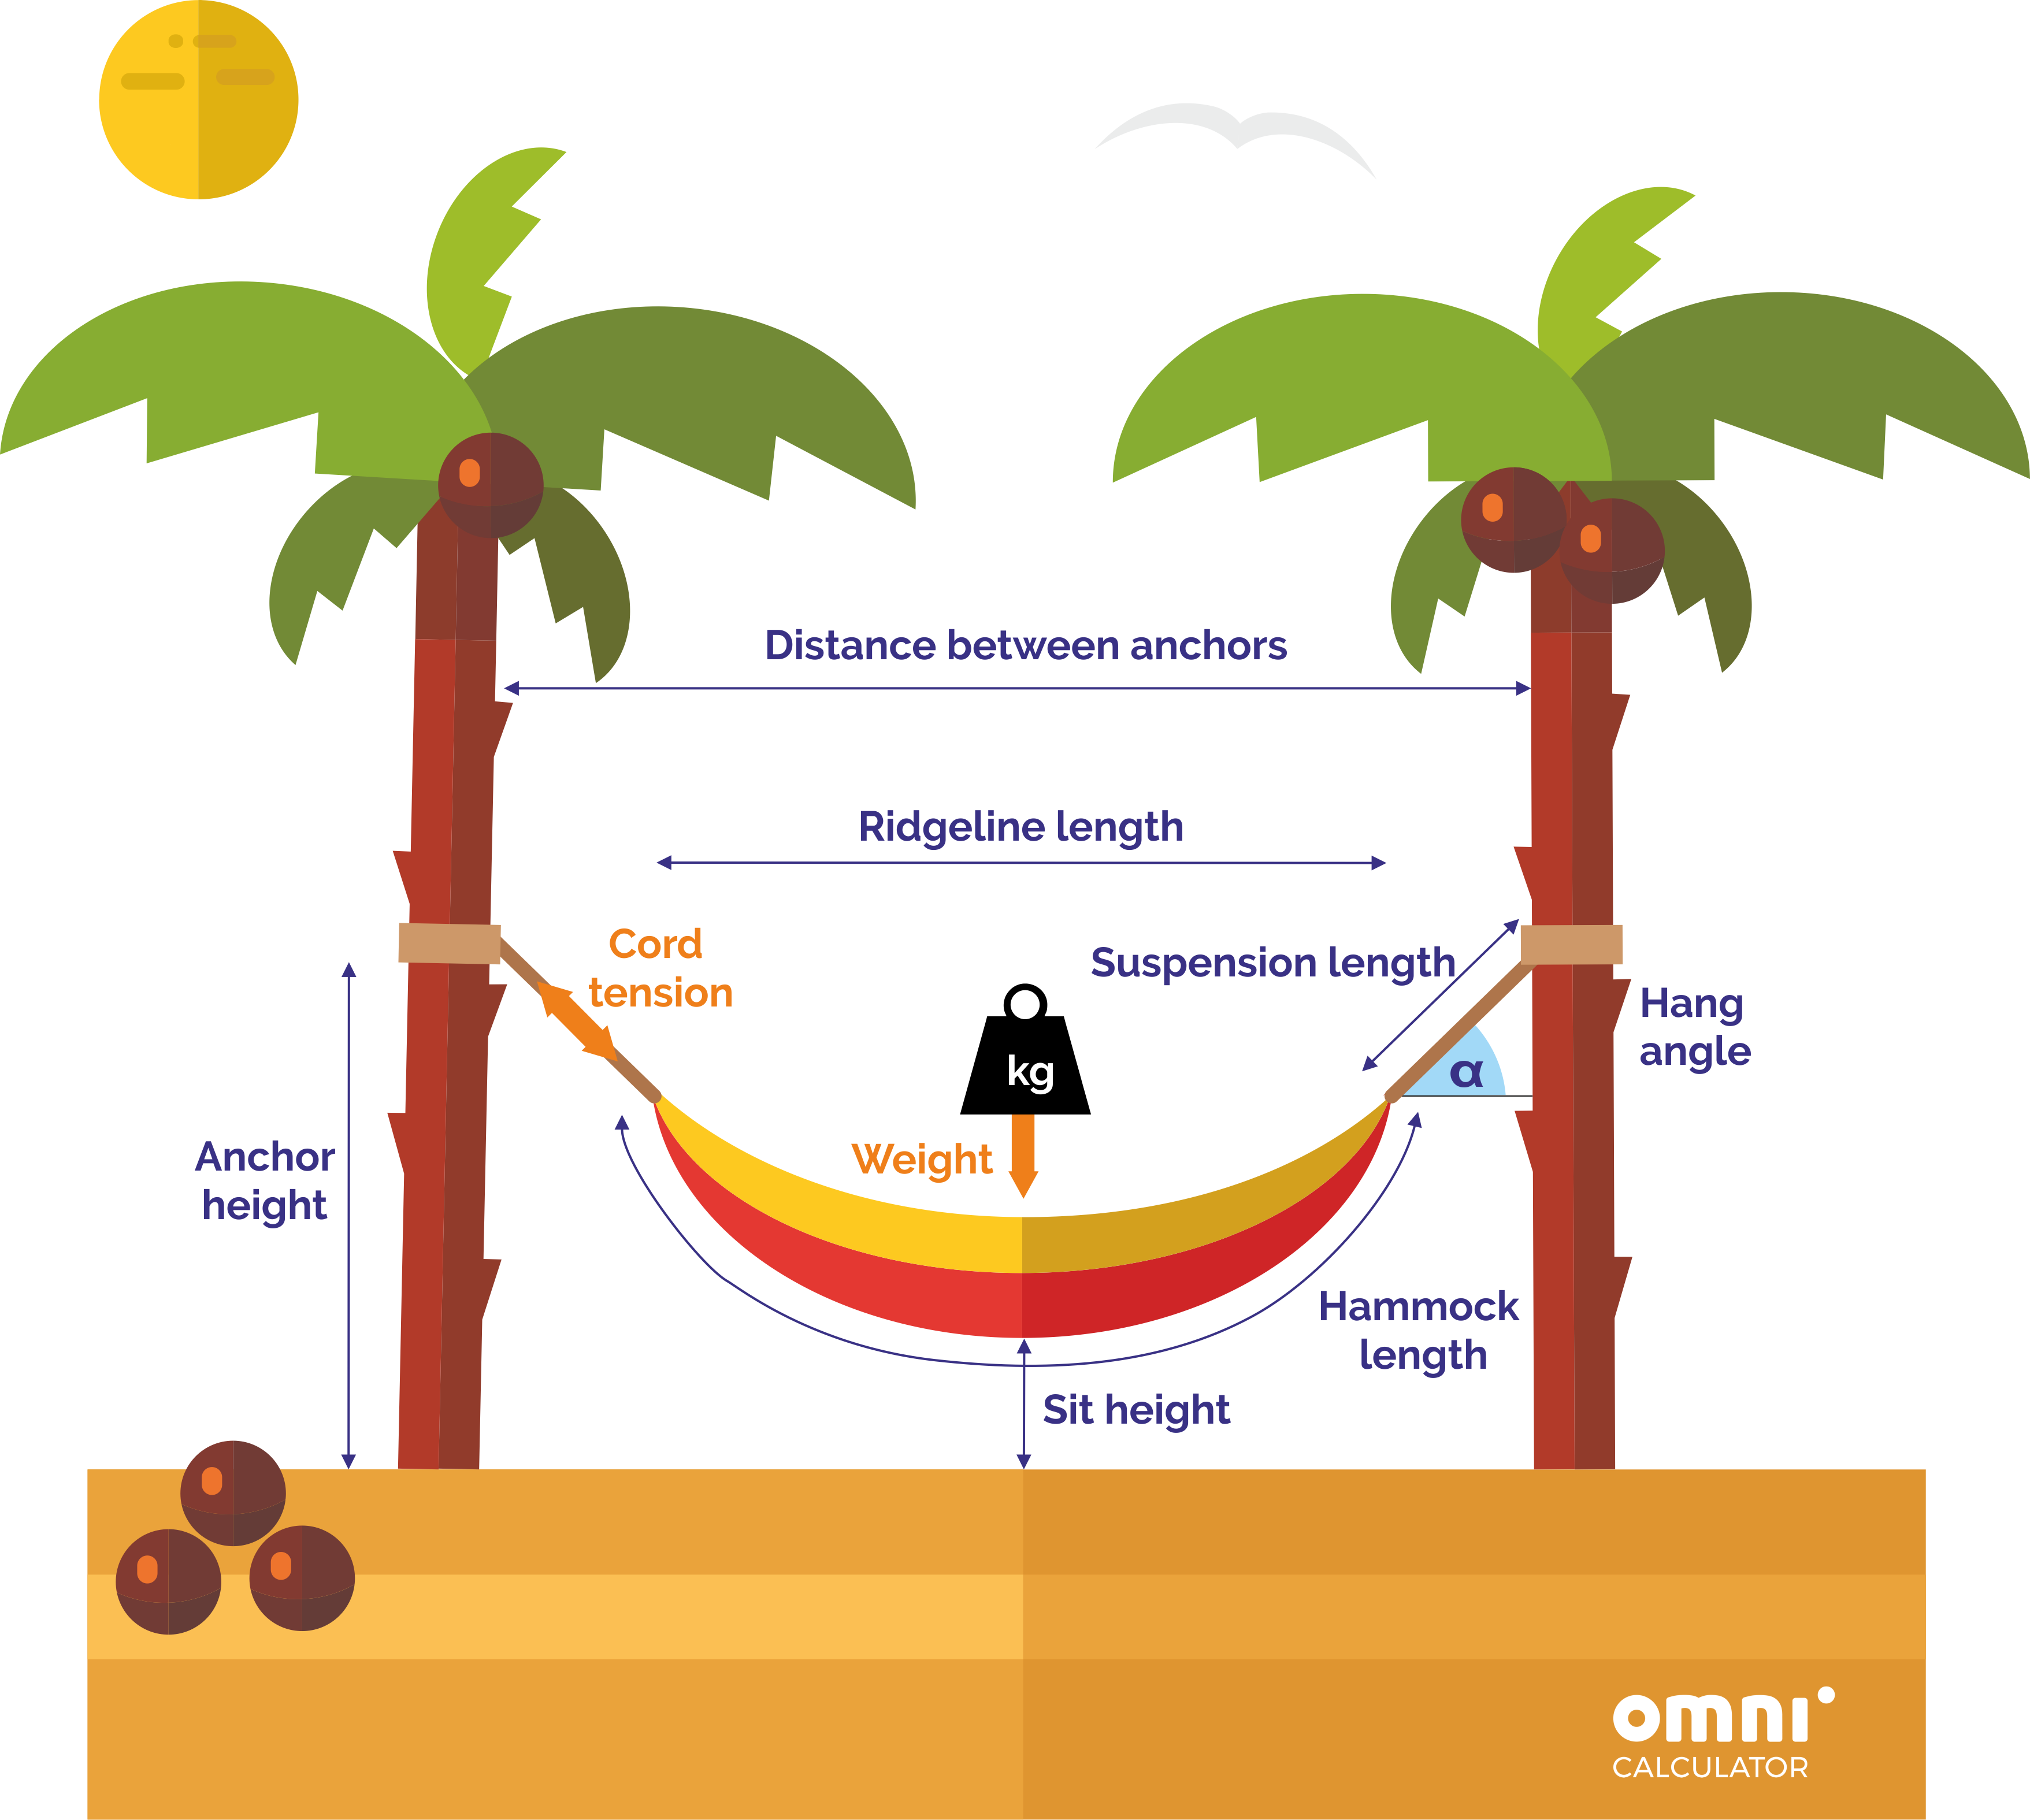 hammock image with all the variables